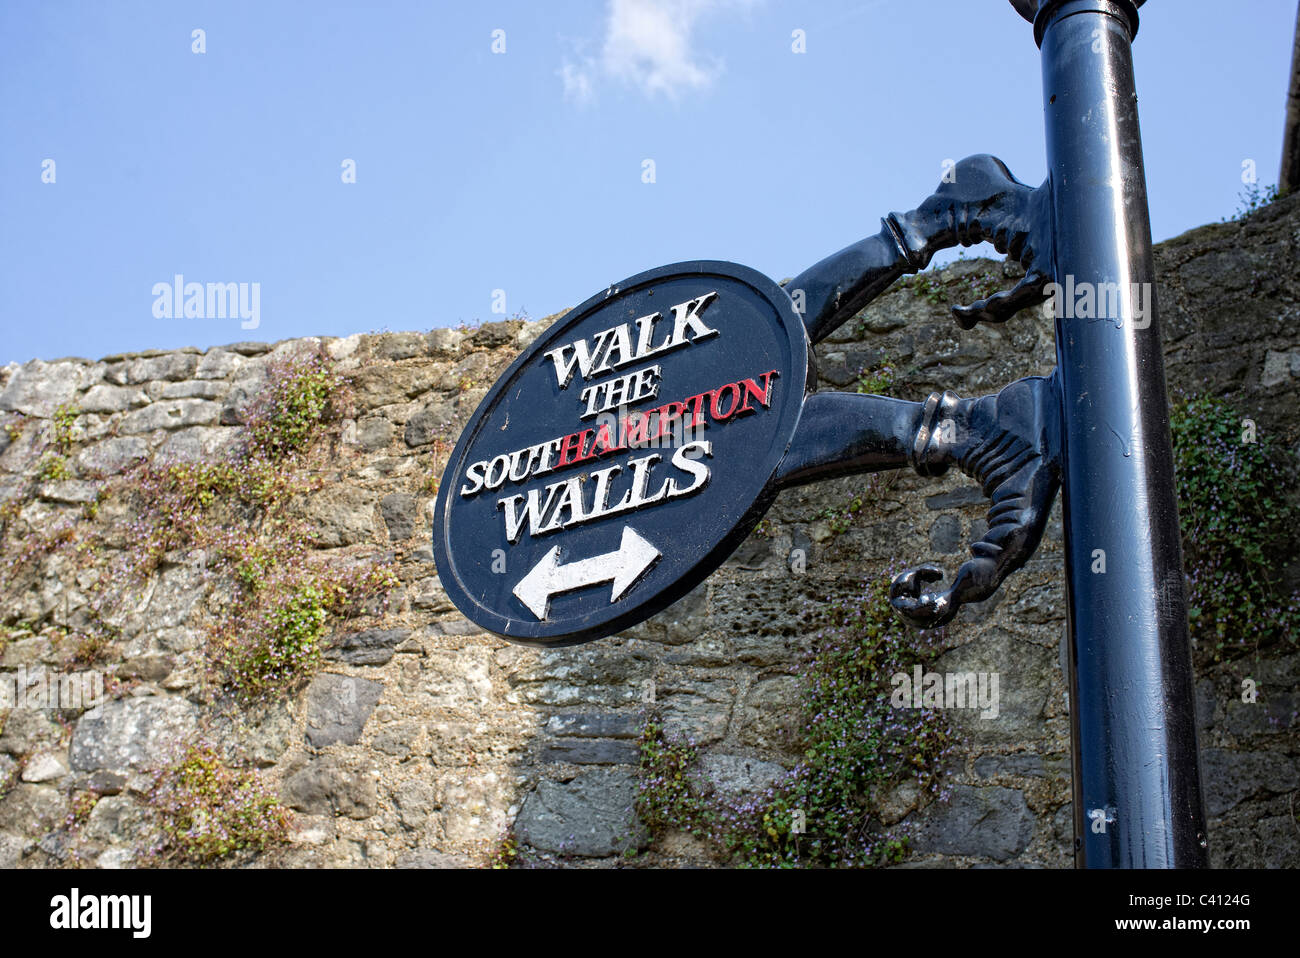 sign for walk the Southampton walls - Stock Image